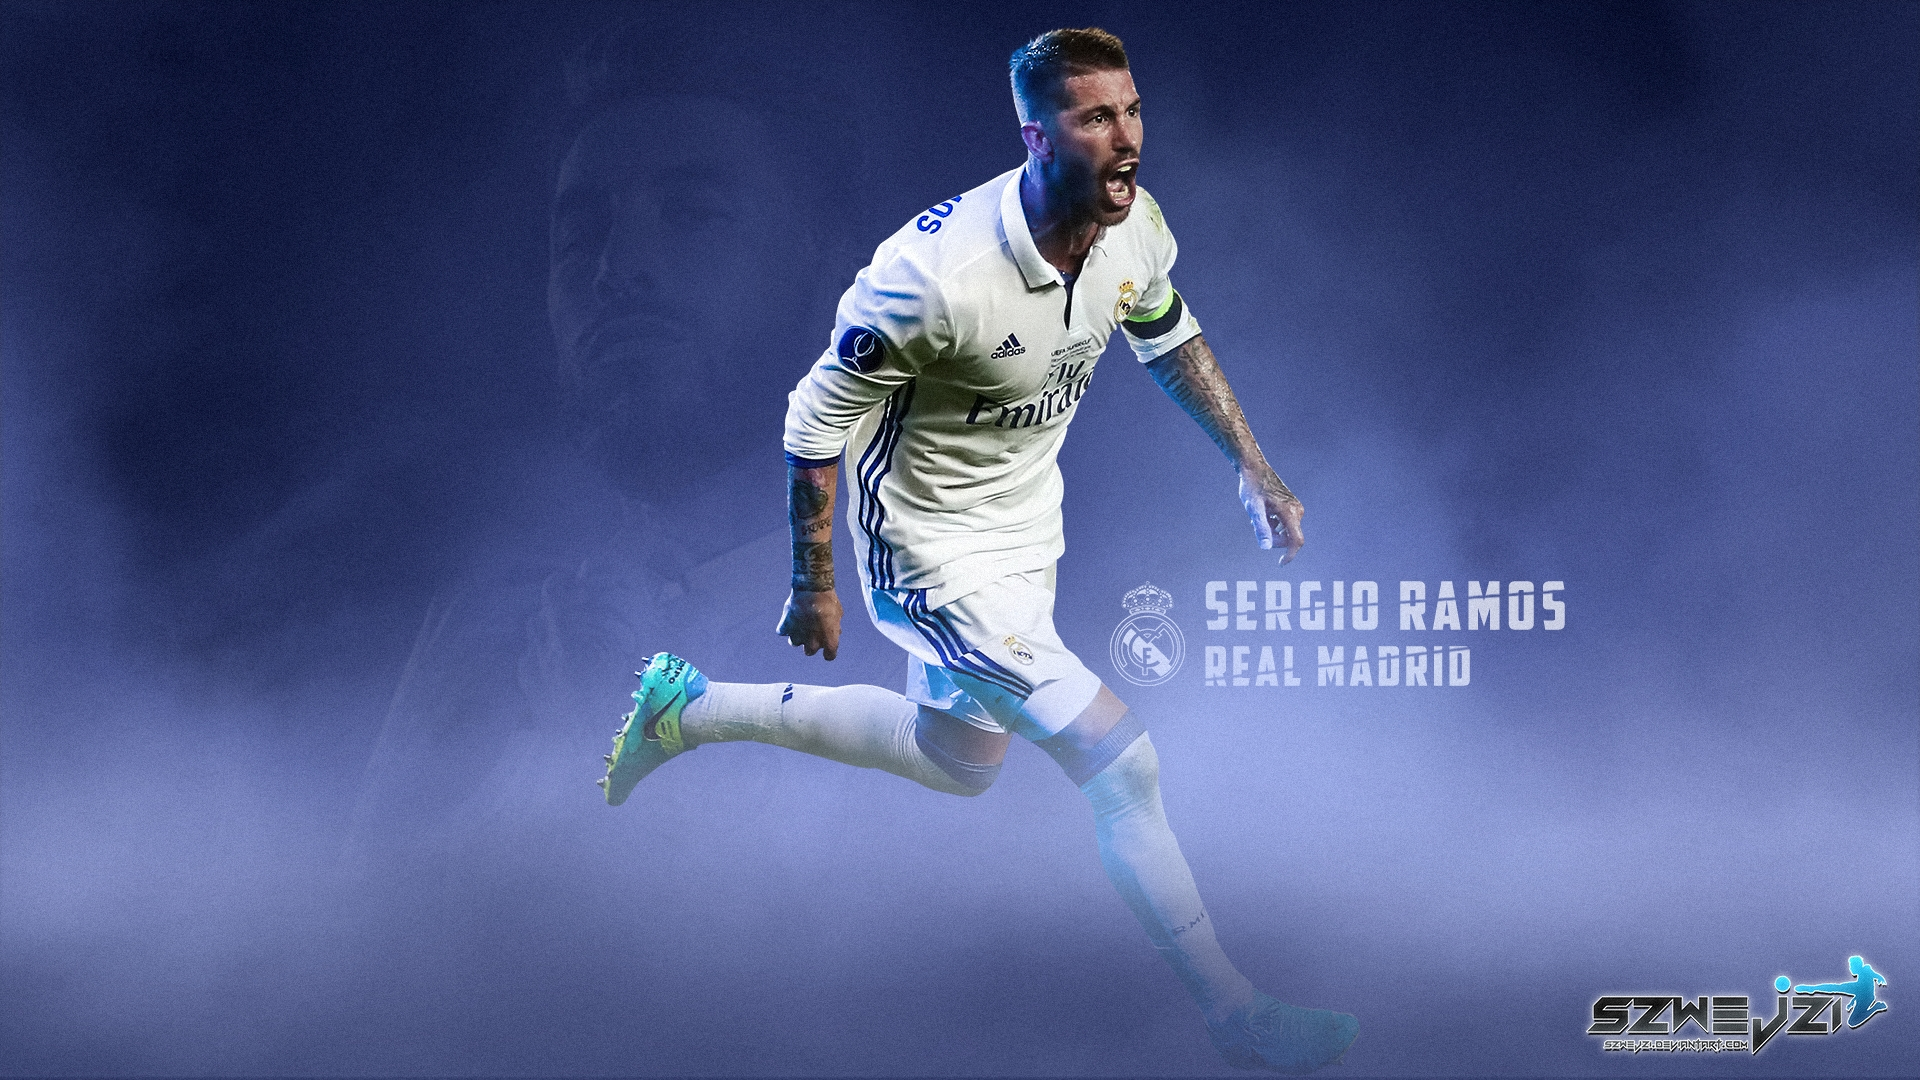 Sergio Ramos Real Madrid Hd Wallpaper Background Image